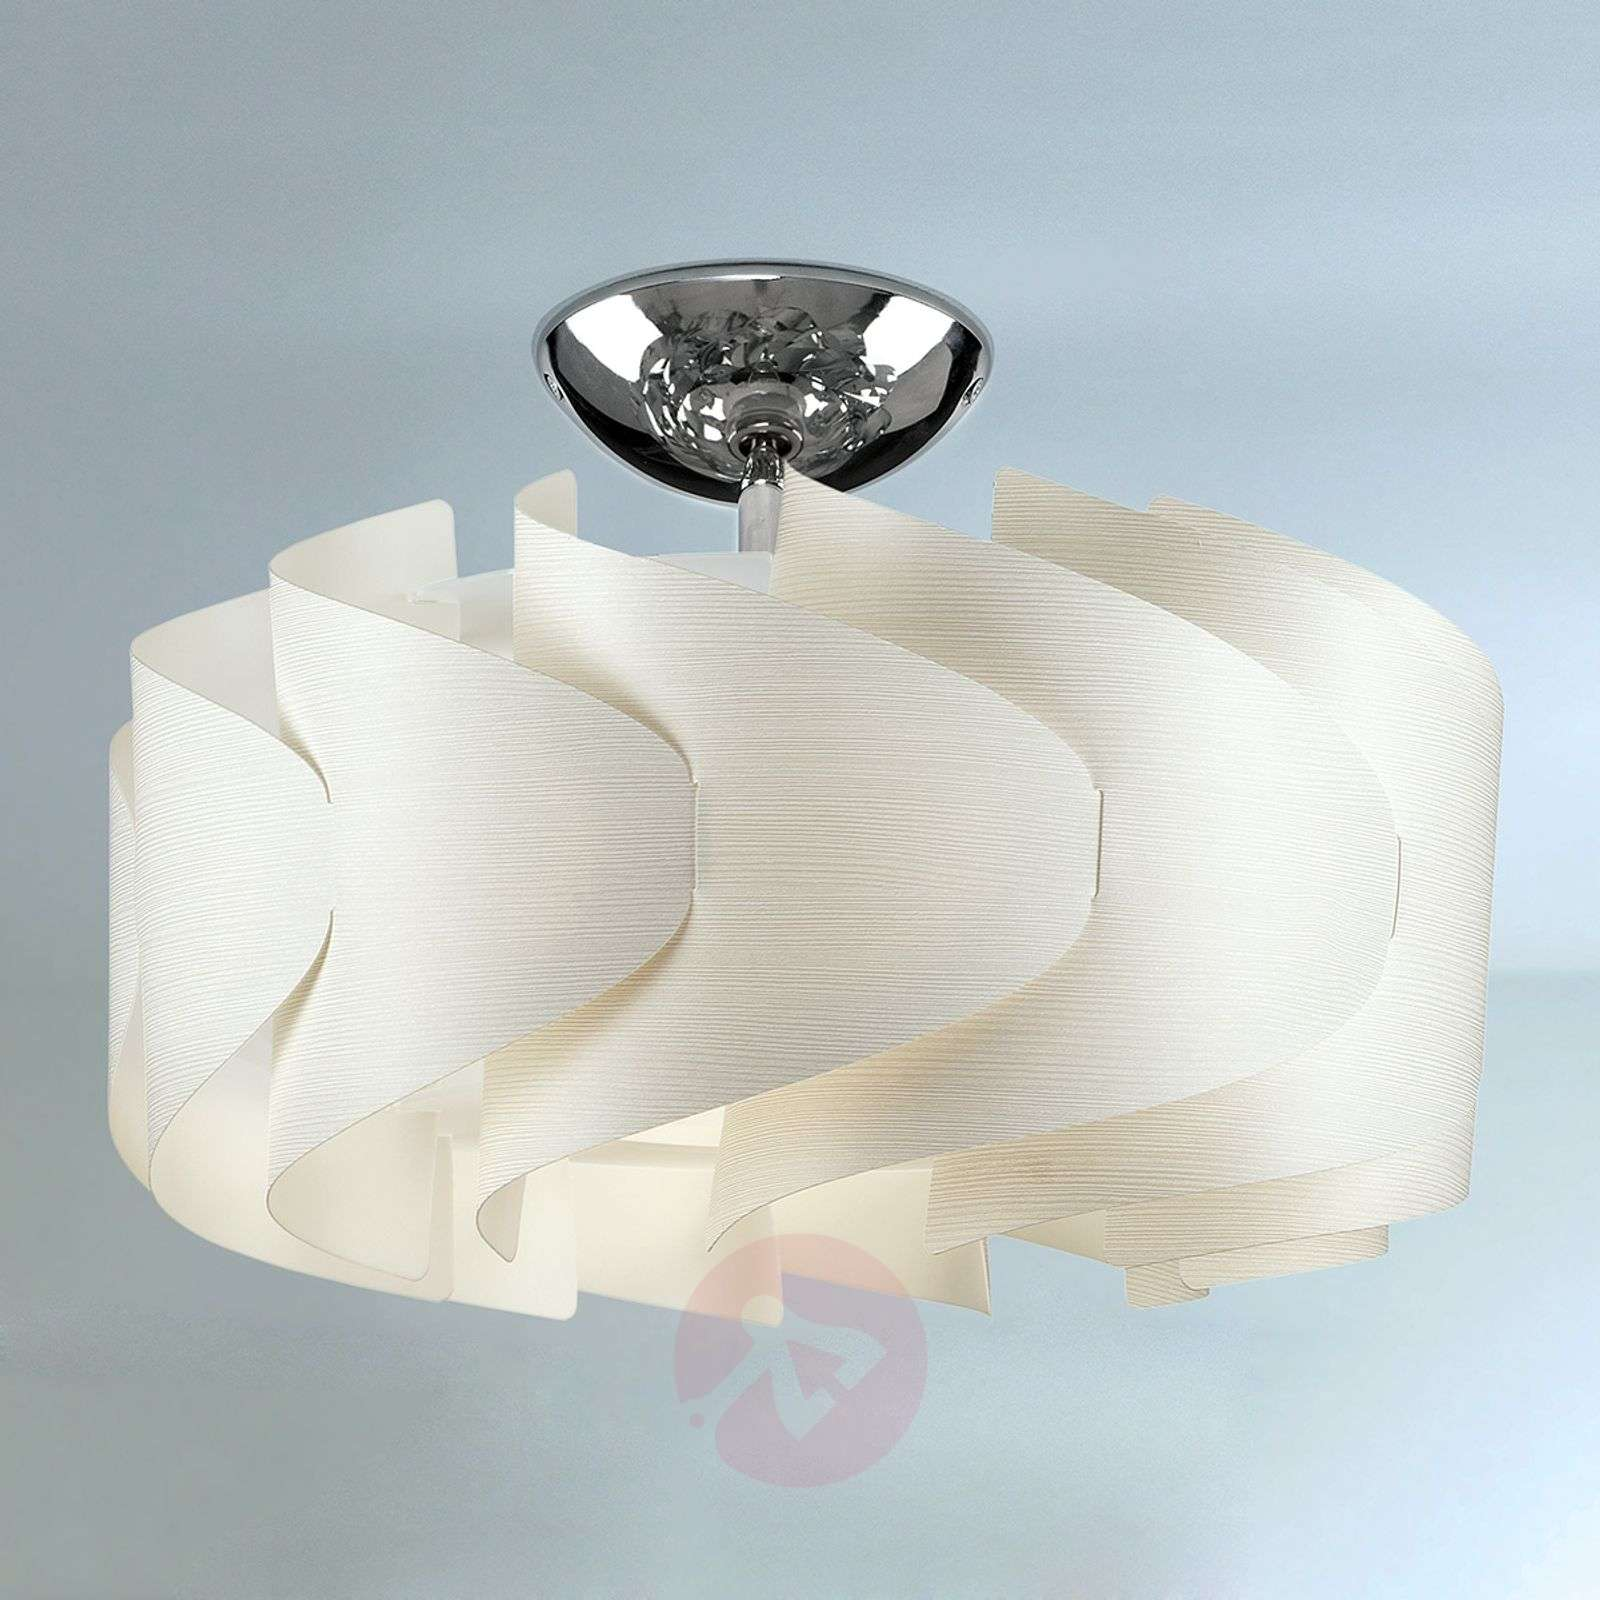 Ceiling light Sky Mini Ellix with a wooden finish-1056080-01